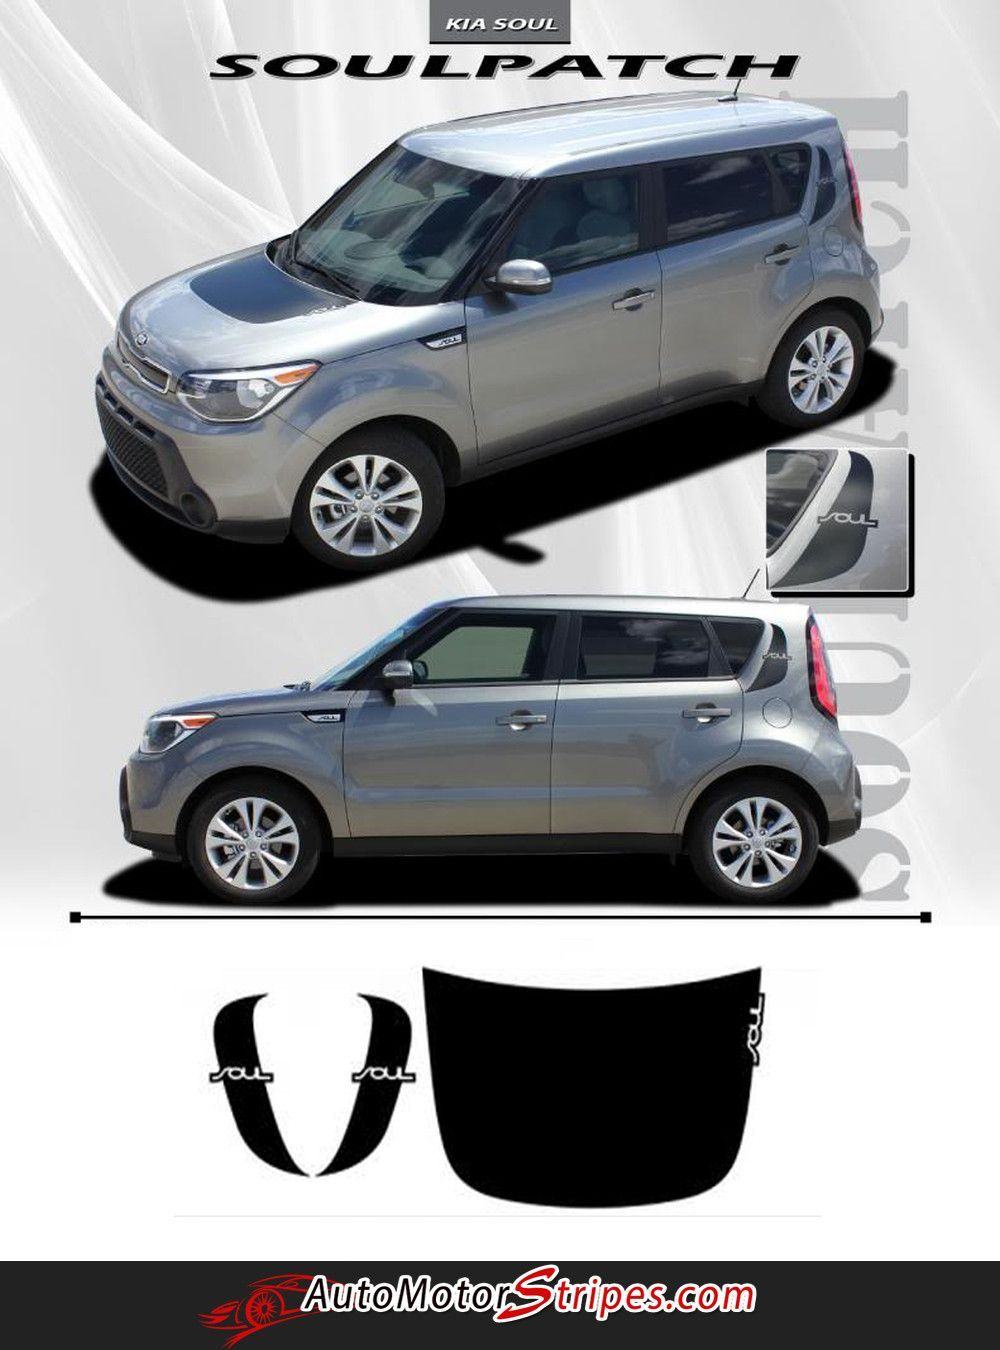 2010 2013 Kia Soul Patch Factory Style Hood And Side Accent Vinyl Graphics 3m Decals Striping Kia Soul Kia Soul Accessories Kia